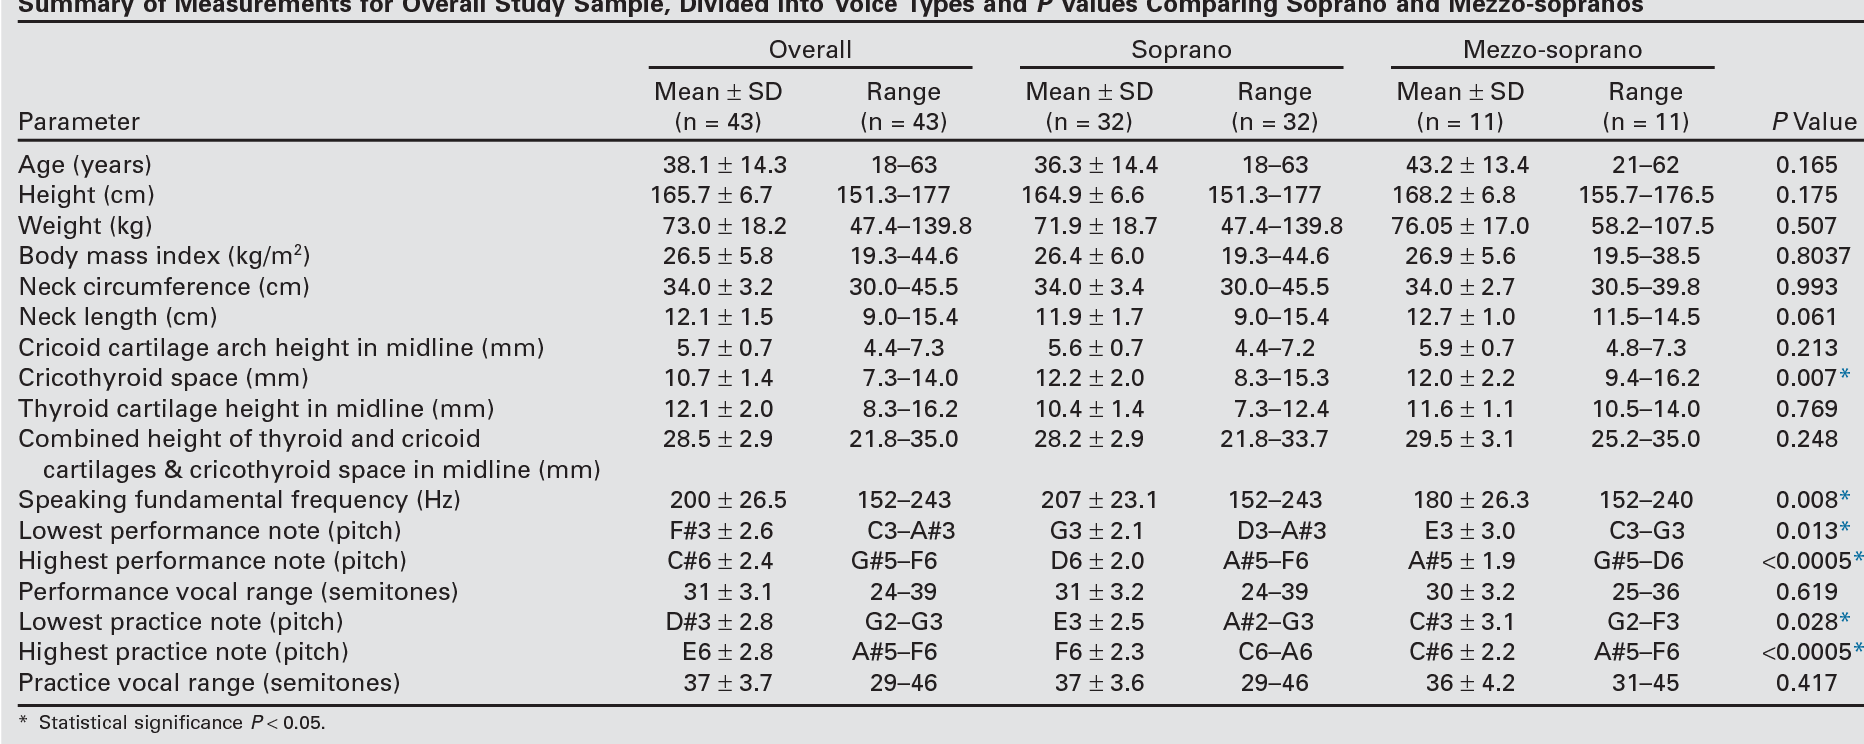 Table 1 from Relationship of the Cricothyroid Space with Vocal Range